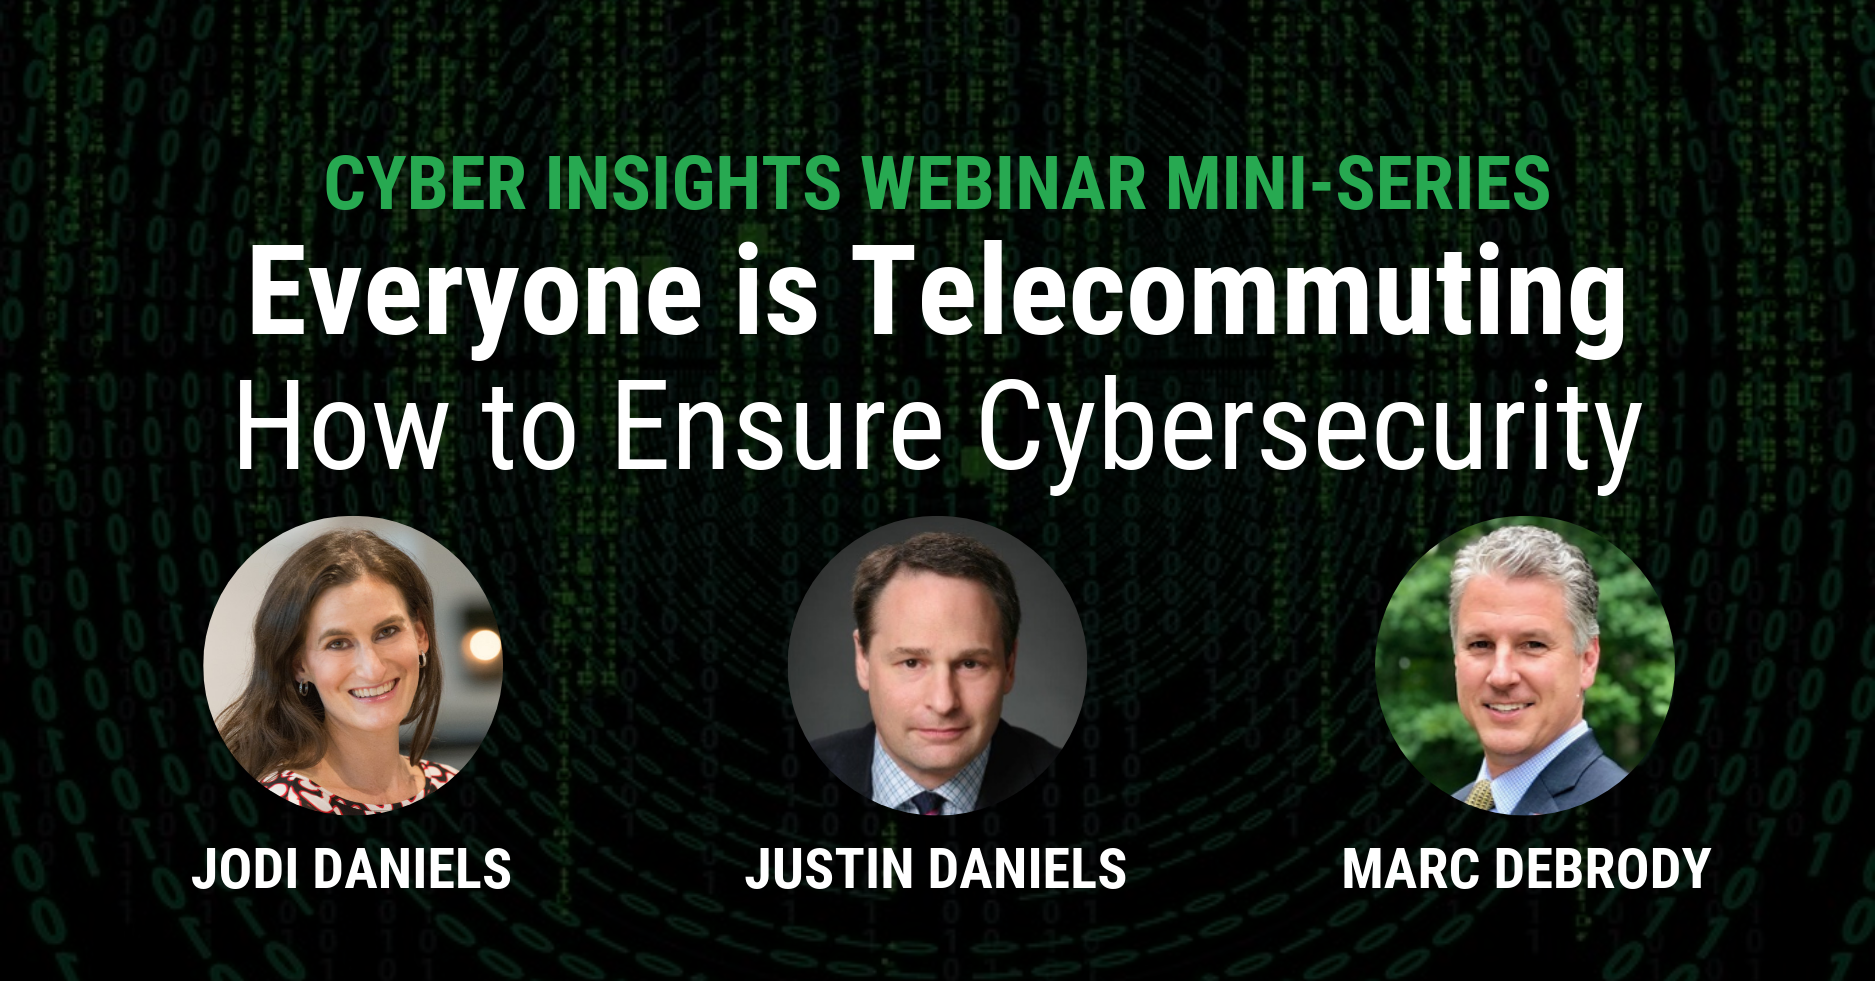 Cybersecurity Webinar:  Everyone is Telecommuting:  How to Ensure Cybersecurity